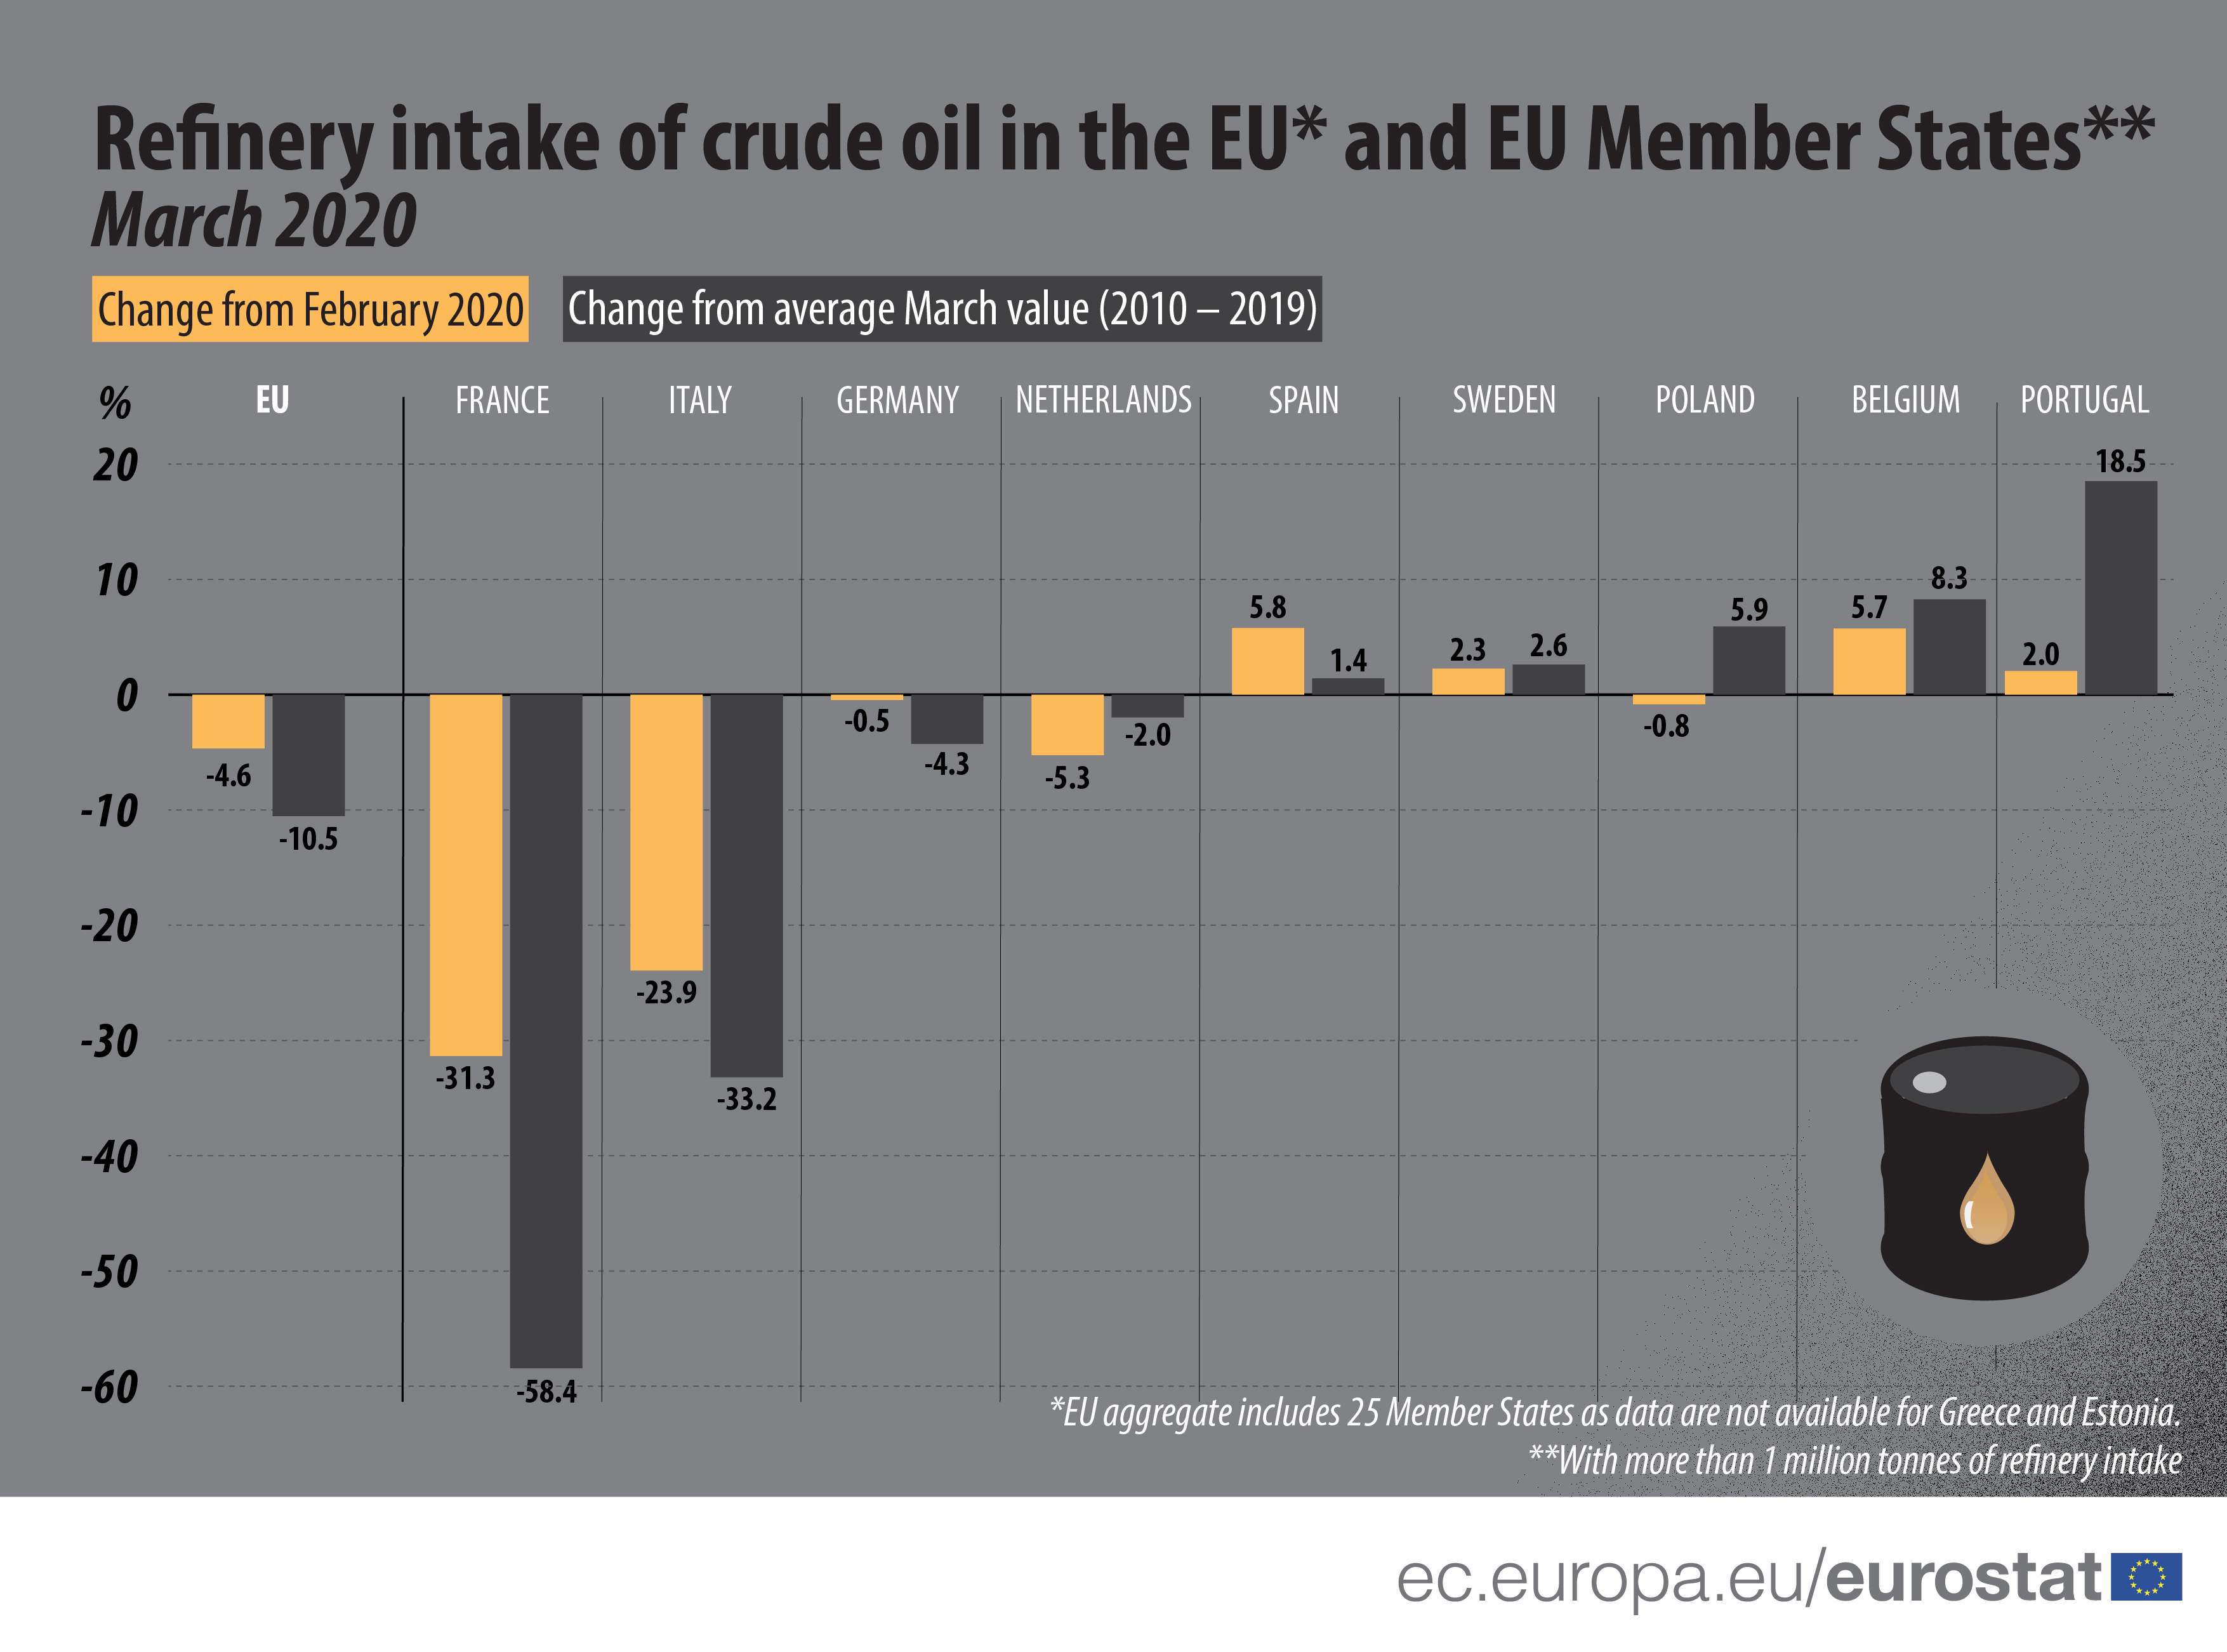 Refinery intake of crude oil, March 2020